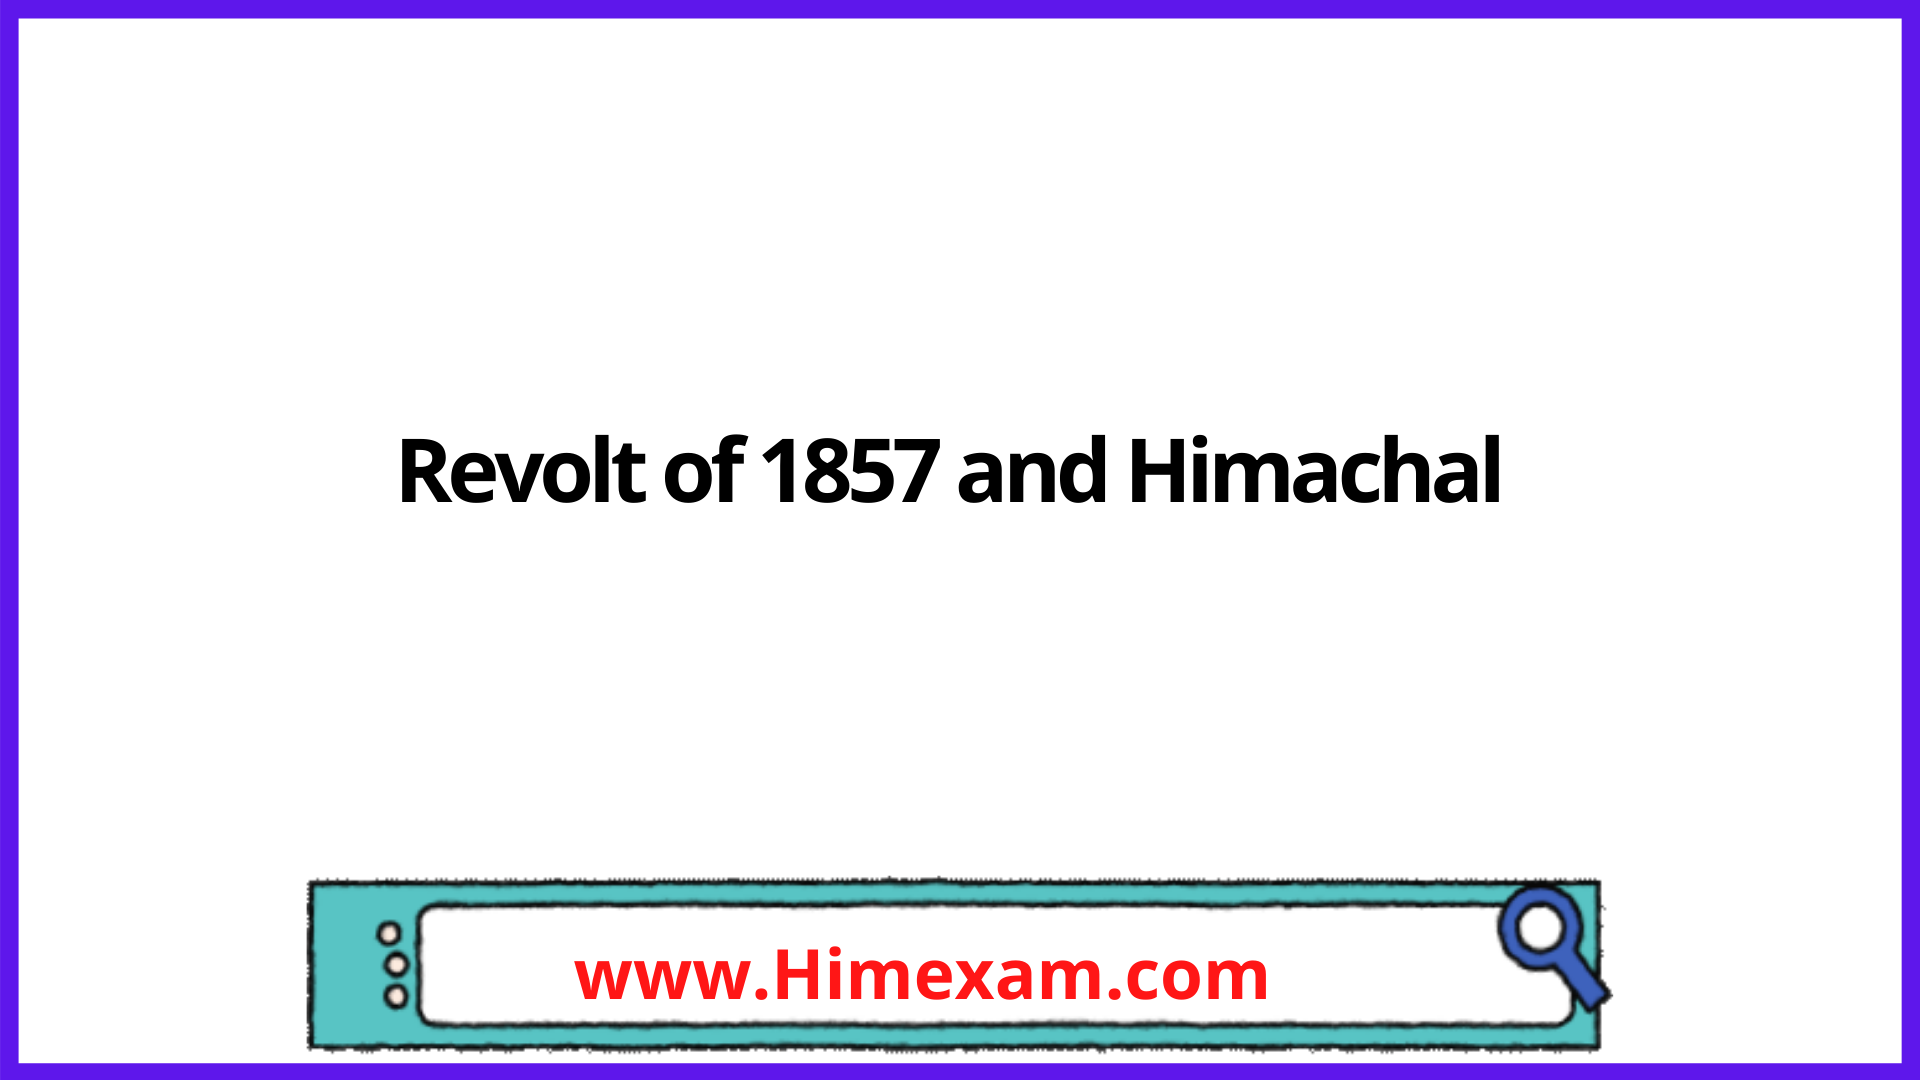 Revolt of 1857 and Himachal